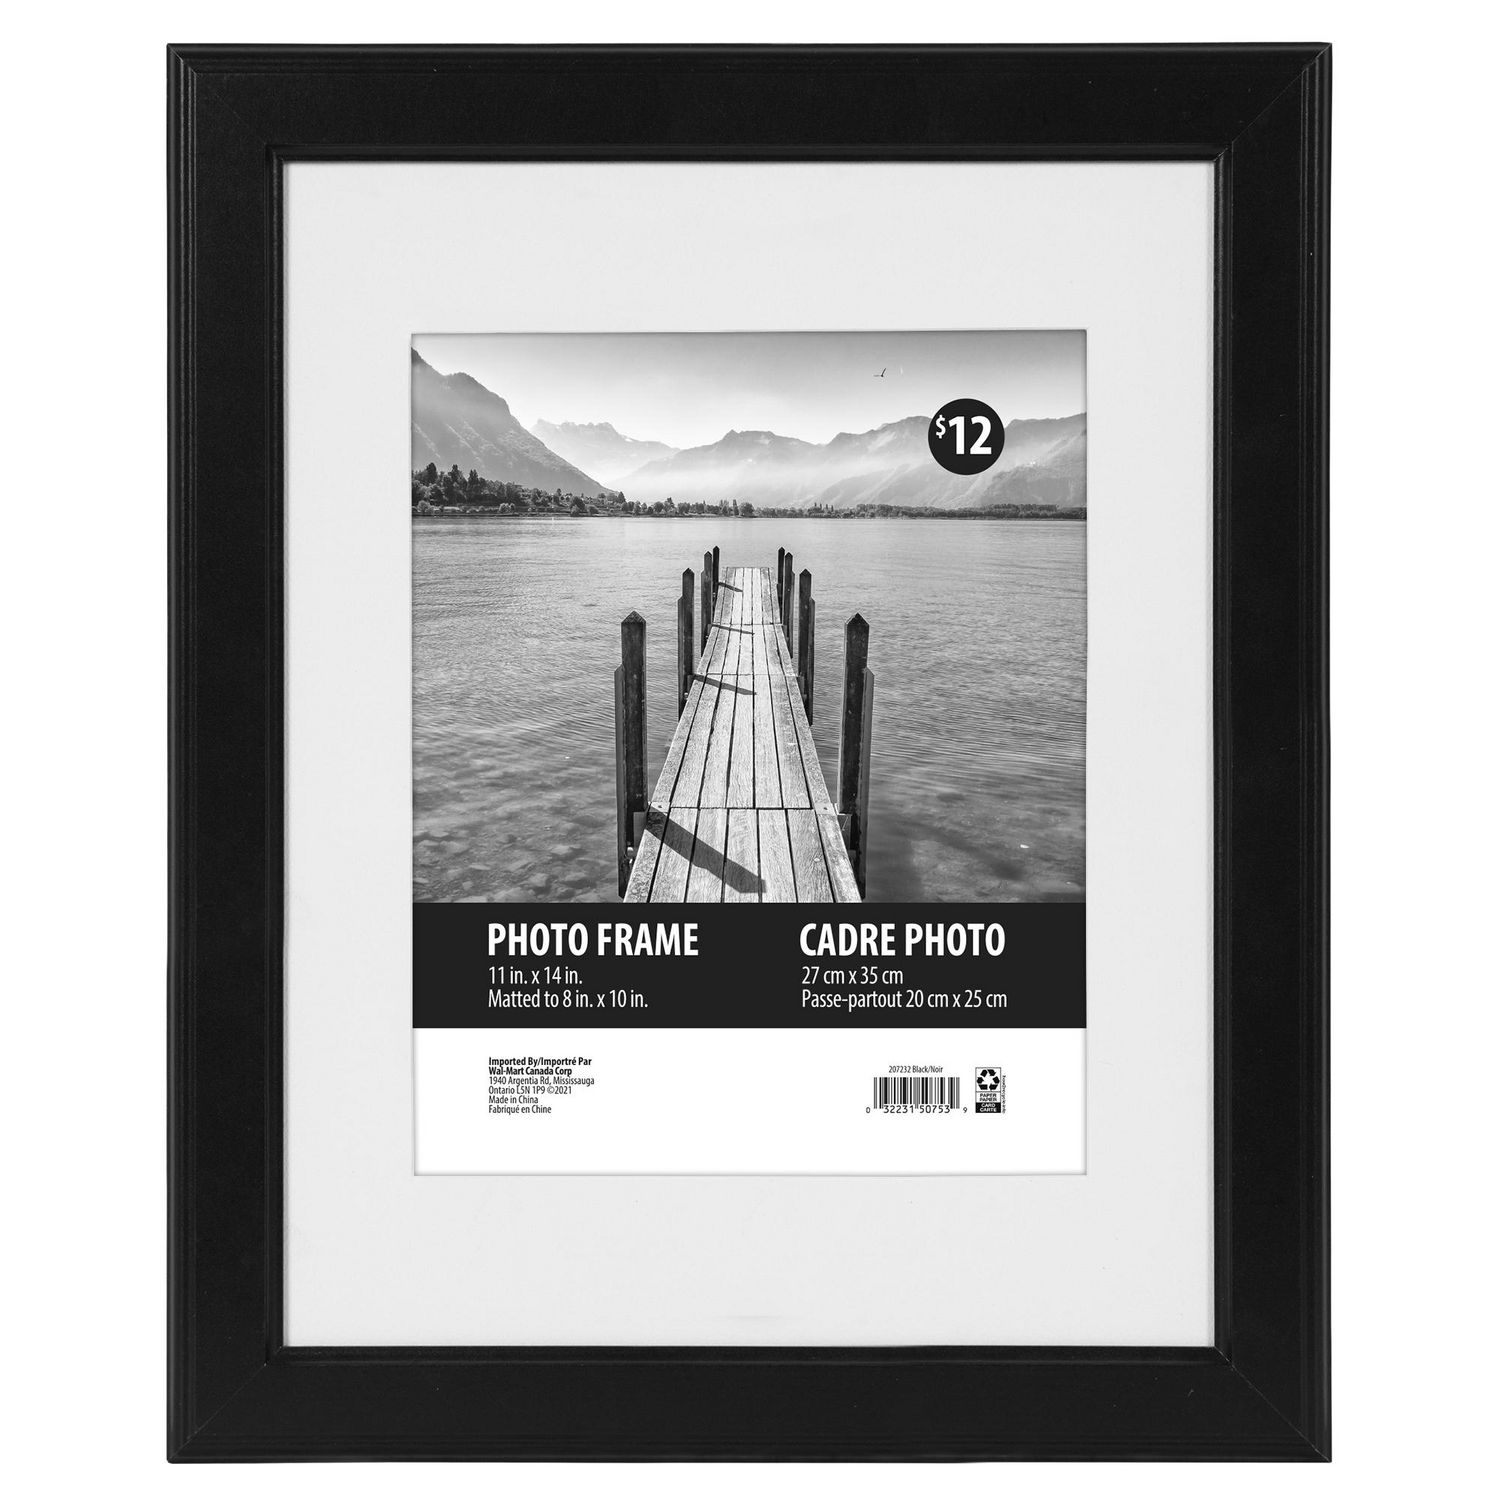 matted beyond bath mat buy of in picture burnes x bed inch basic boston frame from champagne frames